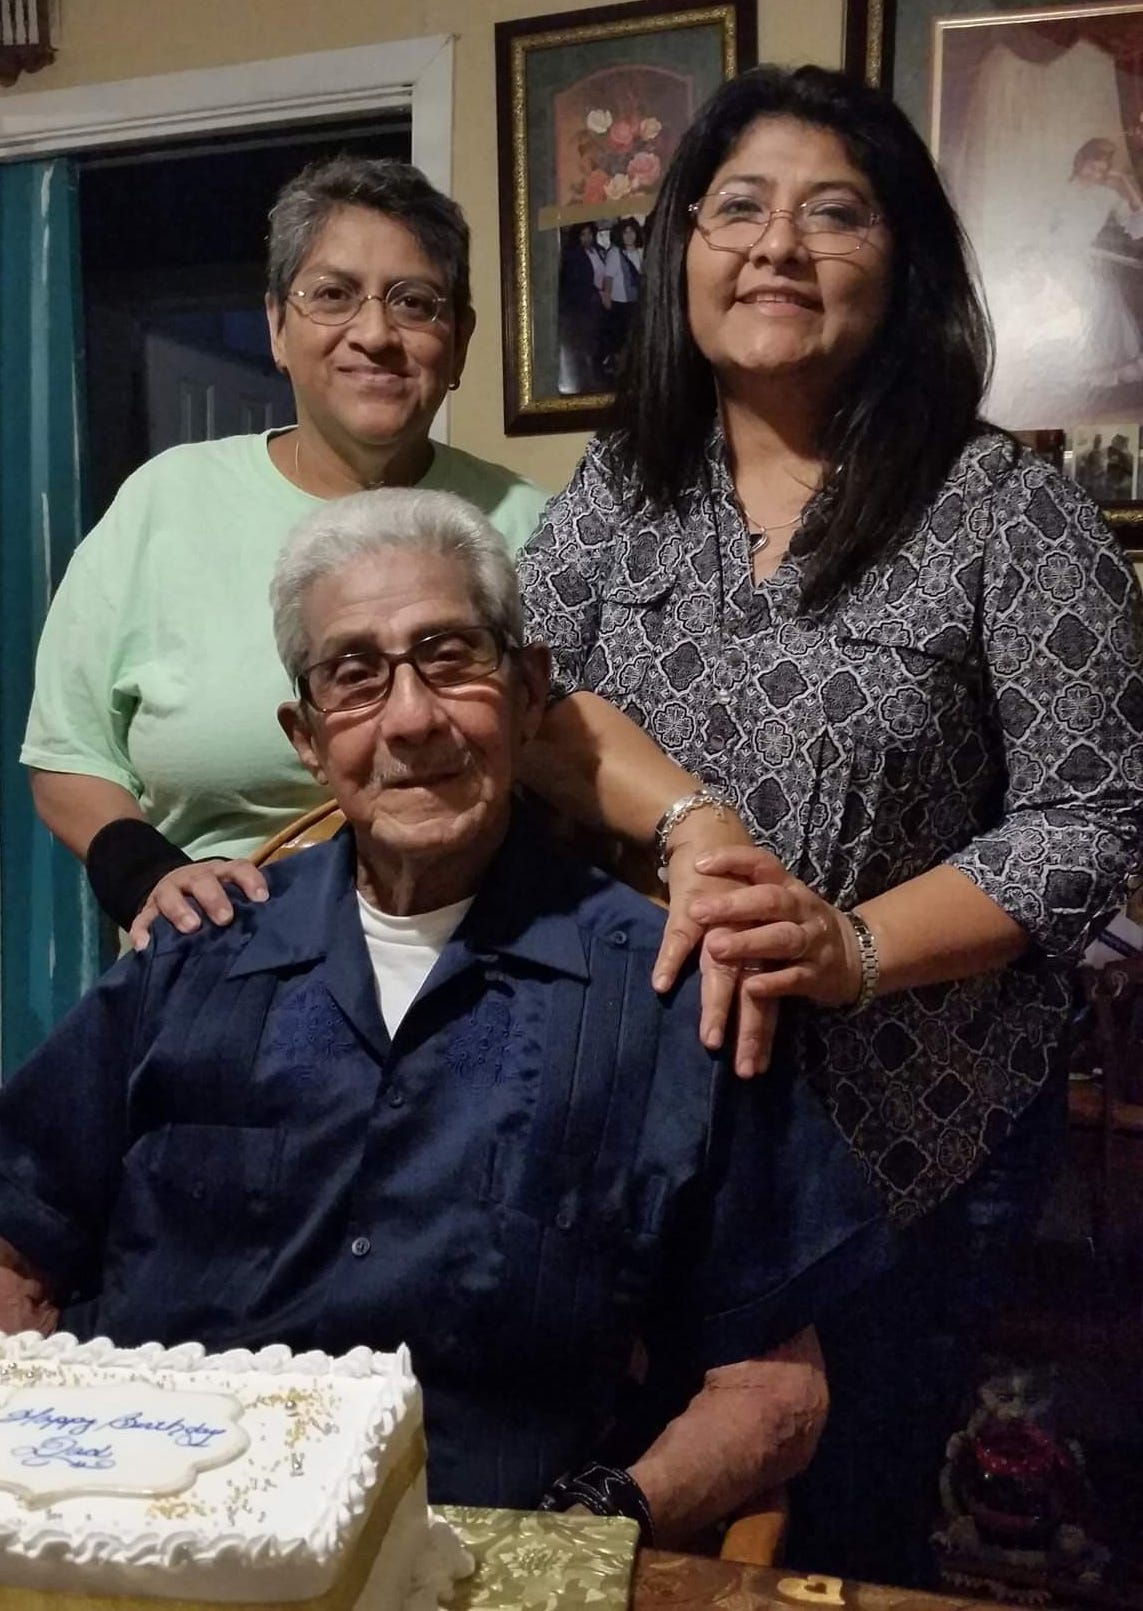 Guadalupe Ramirez, back left, with her partner, Diane Muniz, and her father, Celedonio, received monoclonal antibodies after a positive test for the coronavirus in January.